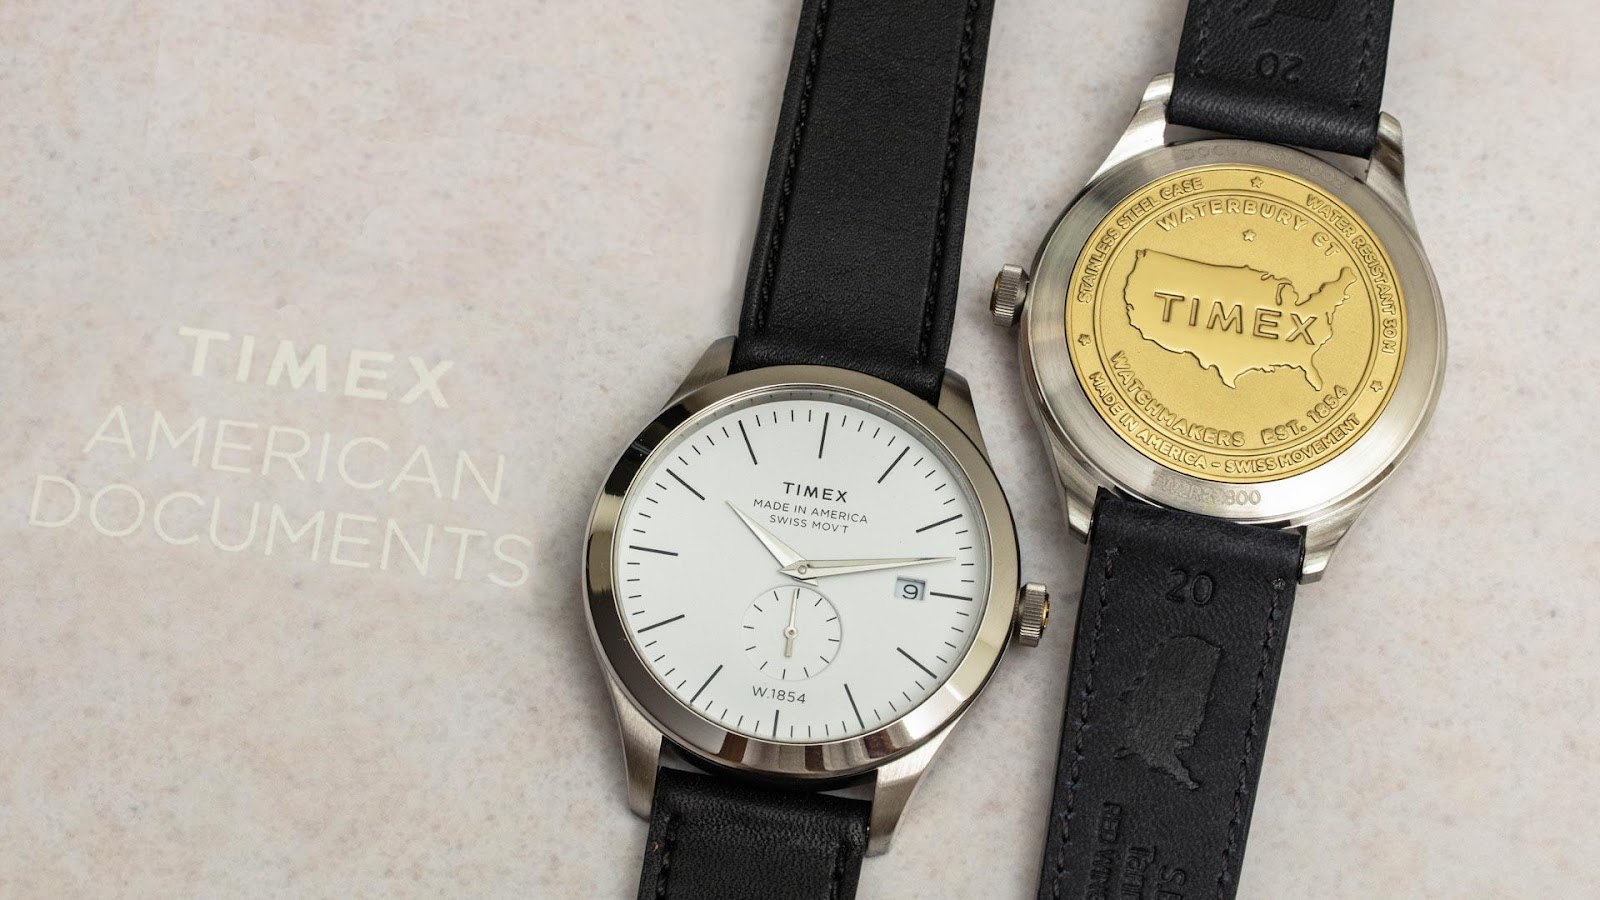 Image result for timex american documents